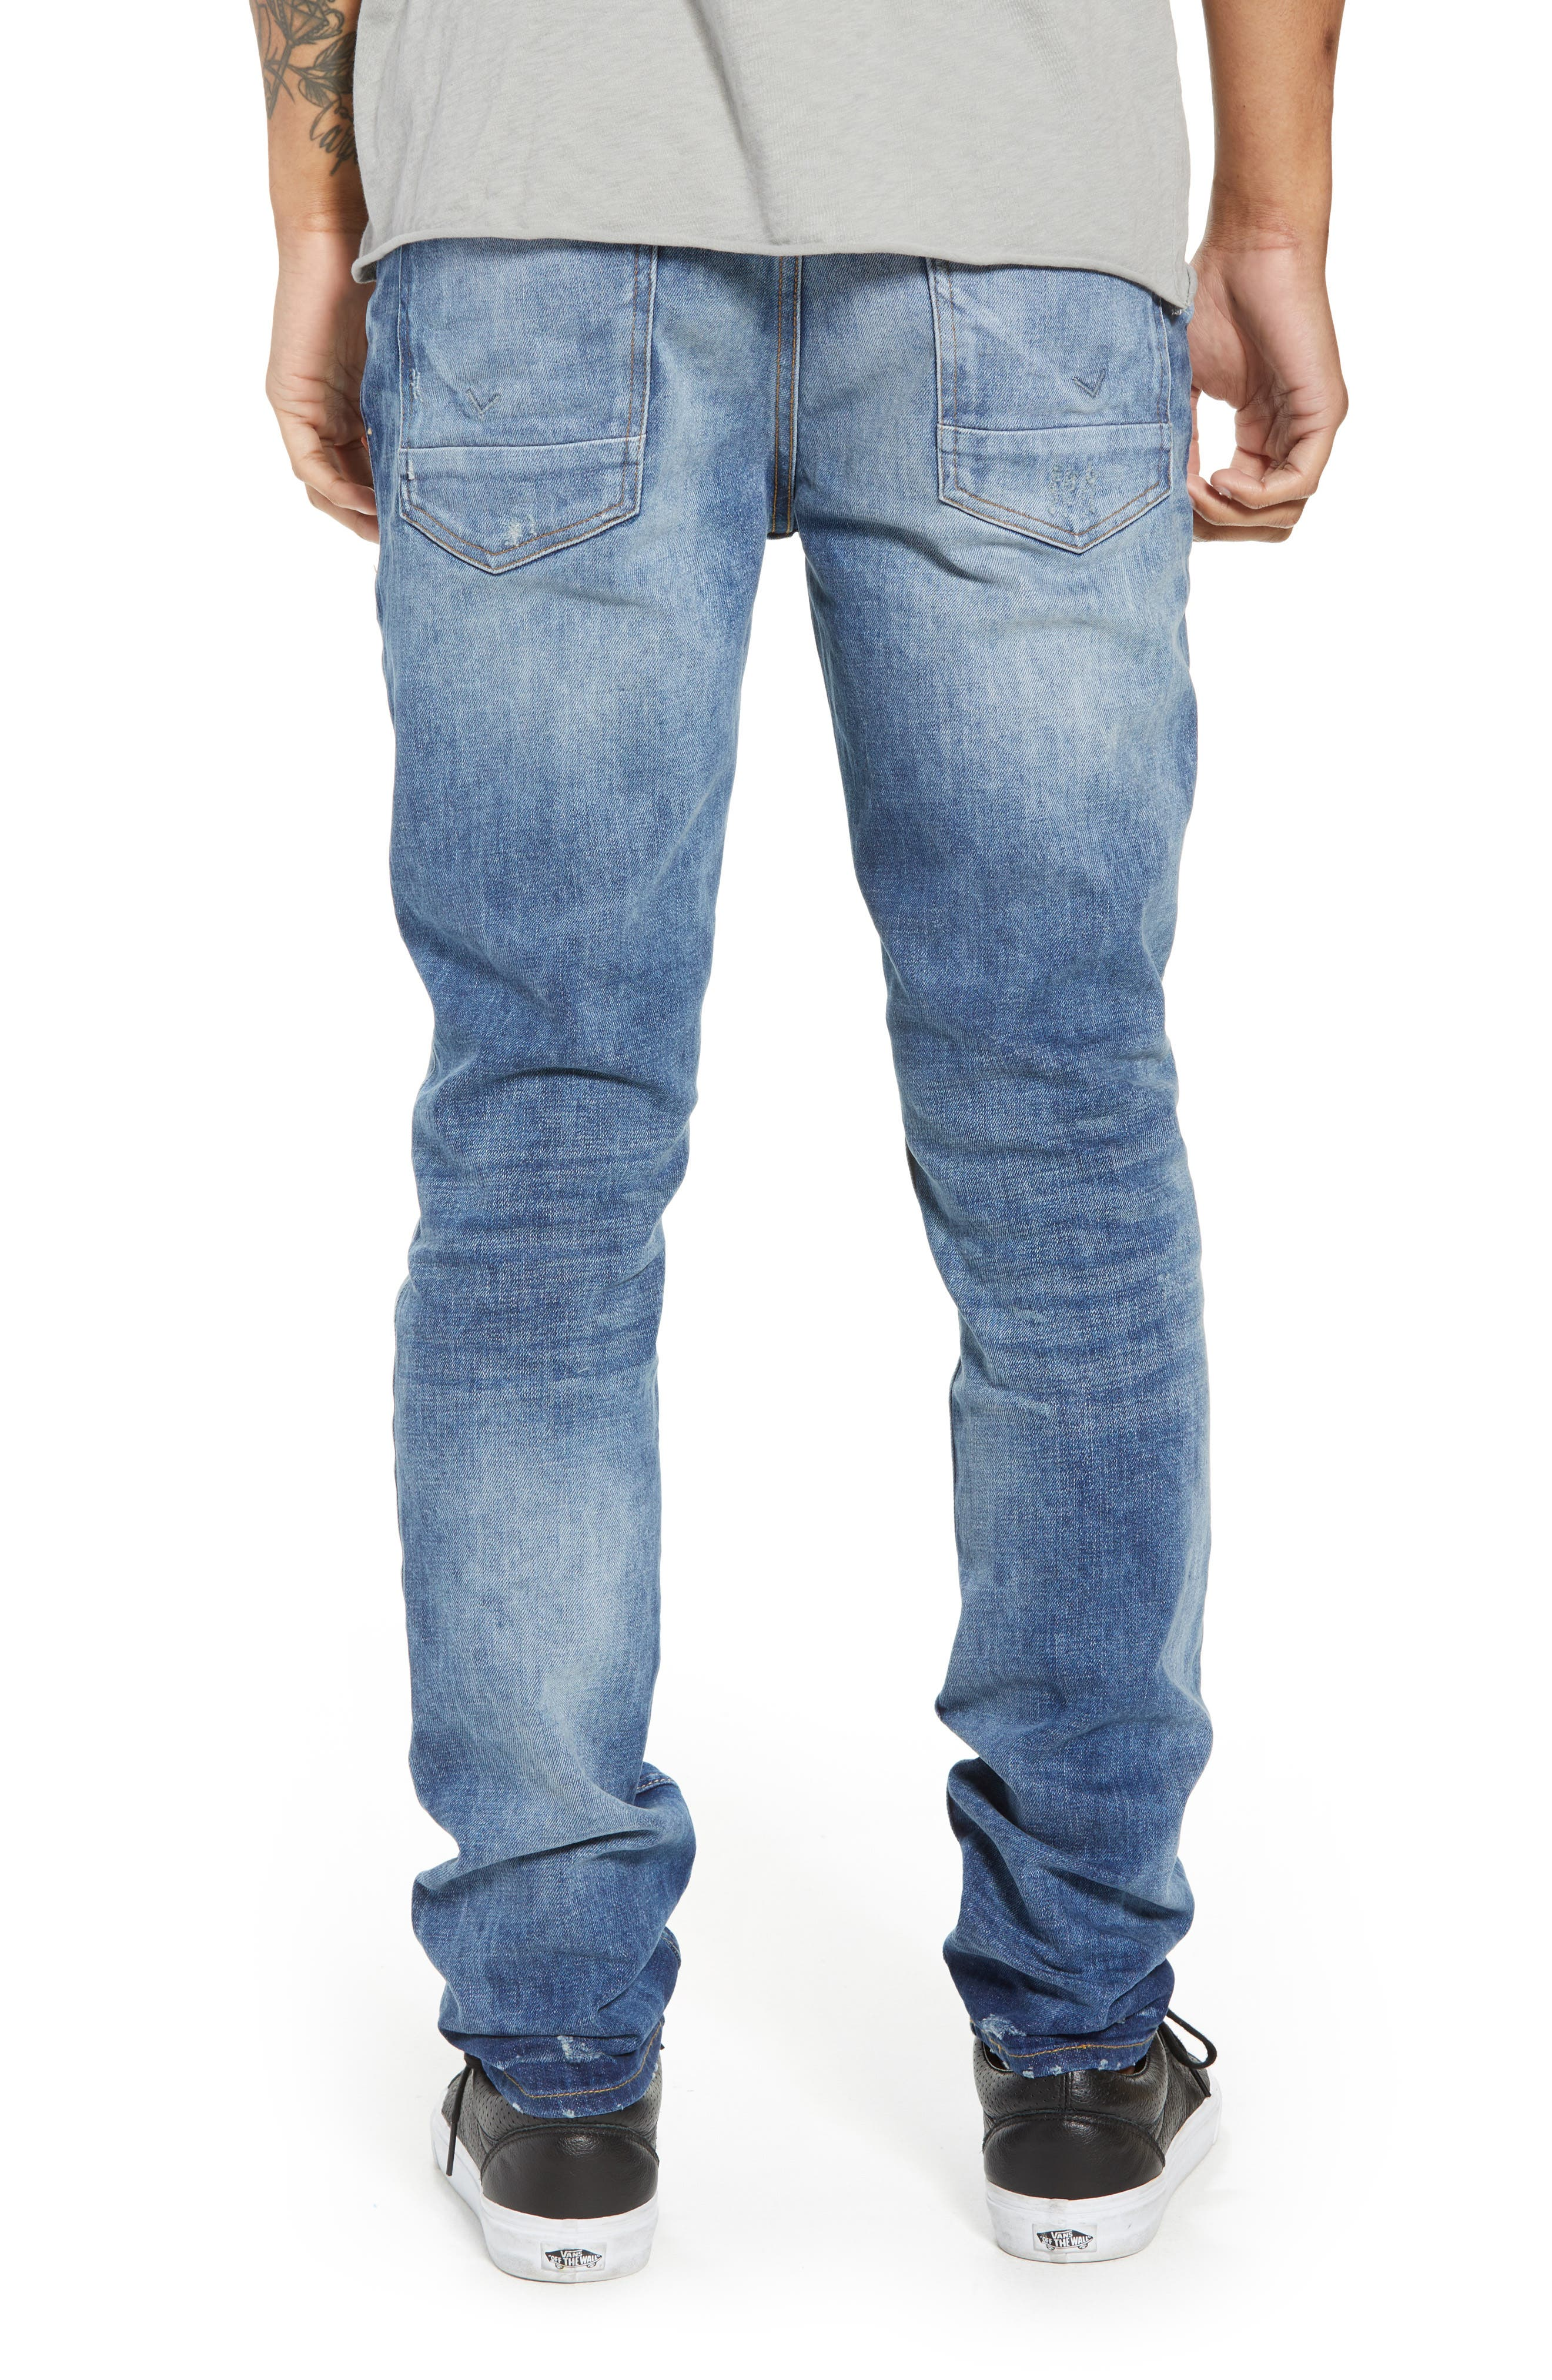 Axl Skinny Fit Jeans,                             Alternate thumbnail 2, color,                             RIDE OUT